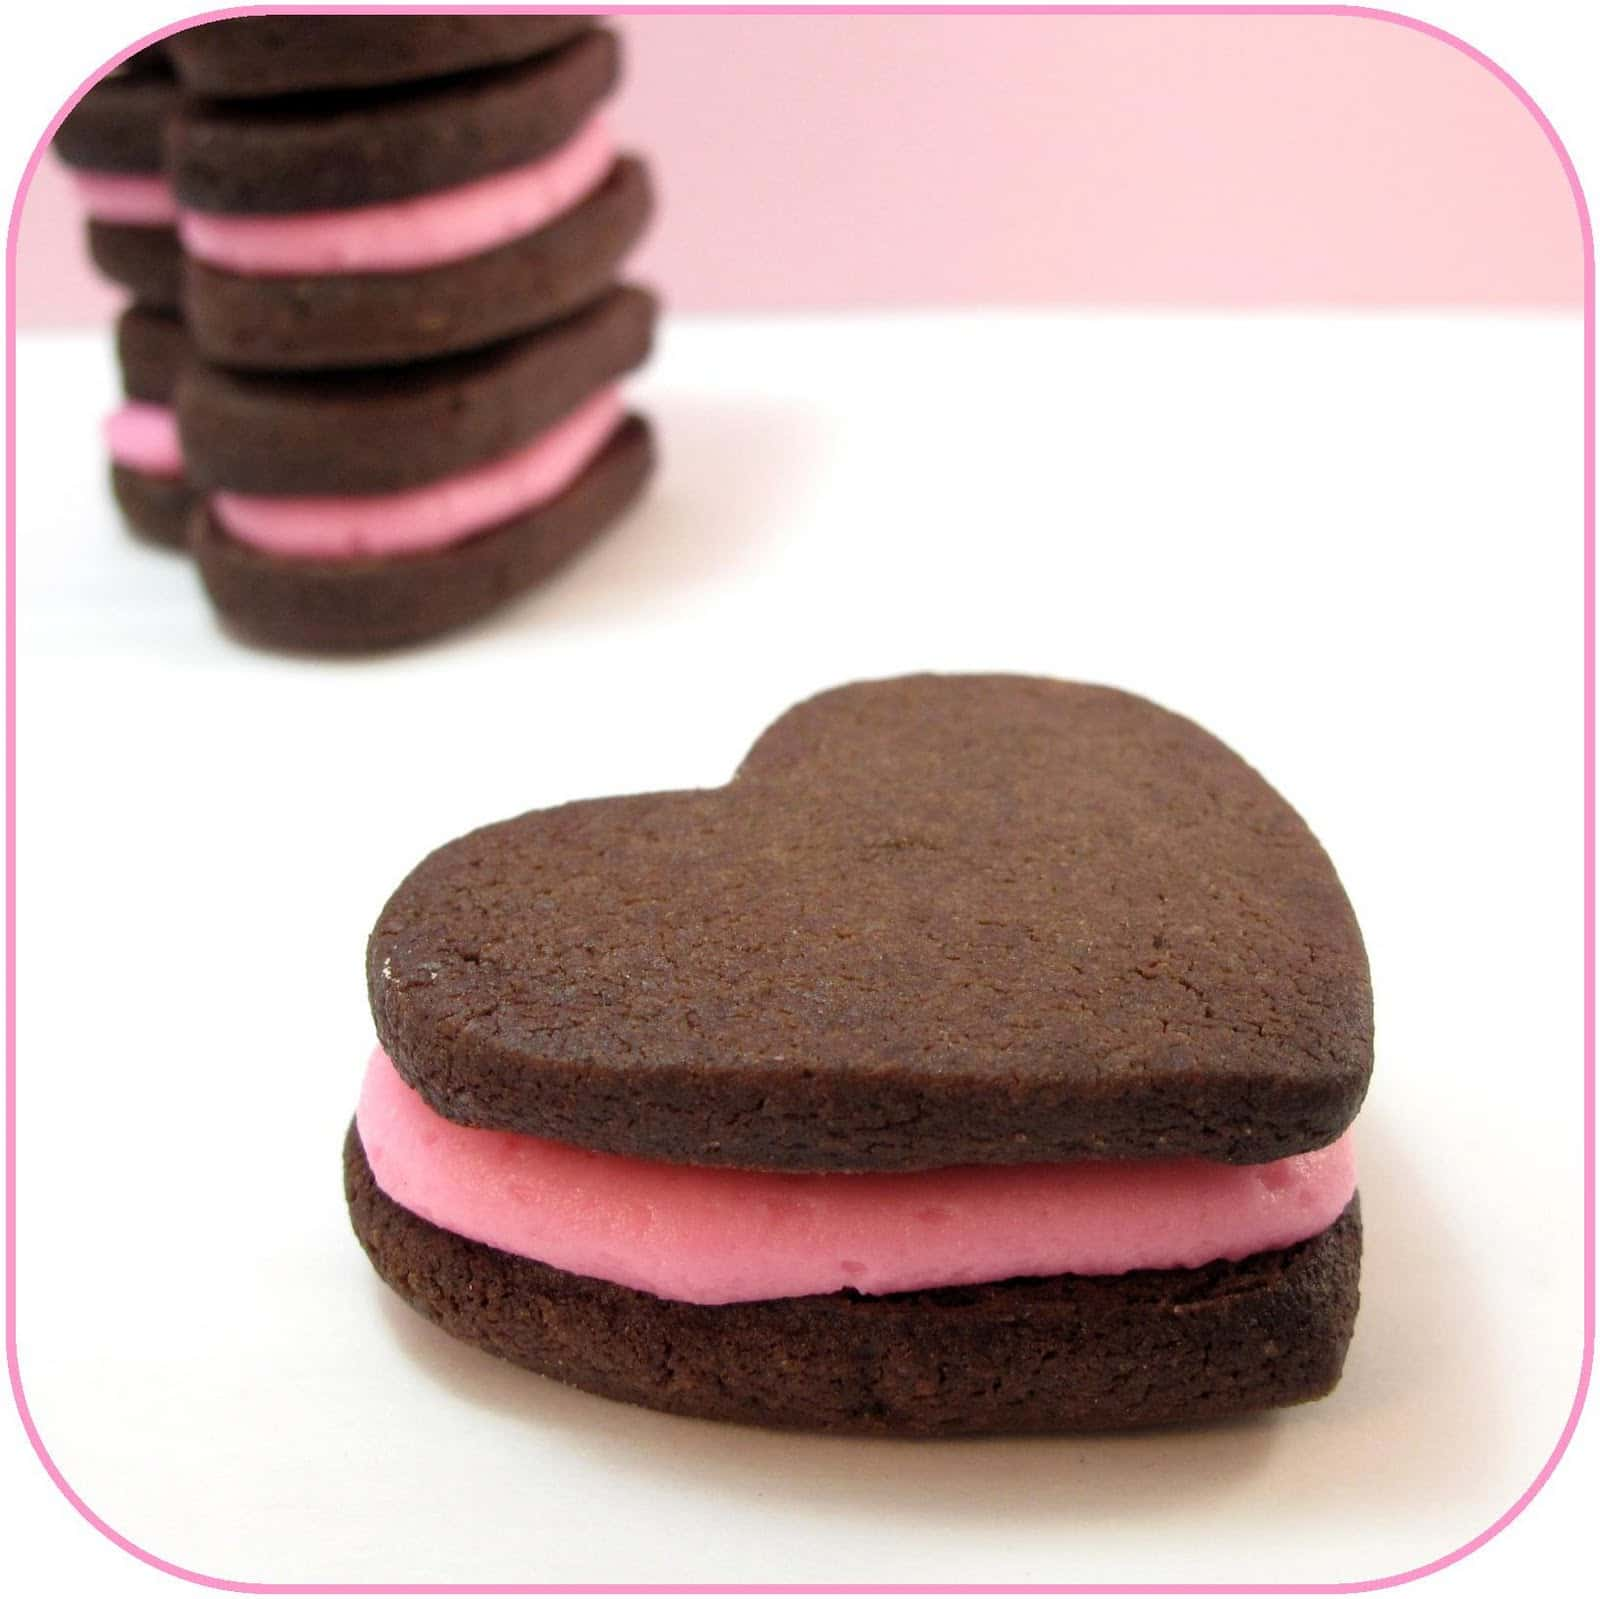 These pink-filled chocolate heart sandwich cookies are a lovey dovey ...